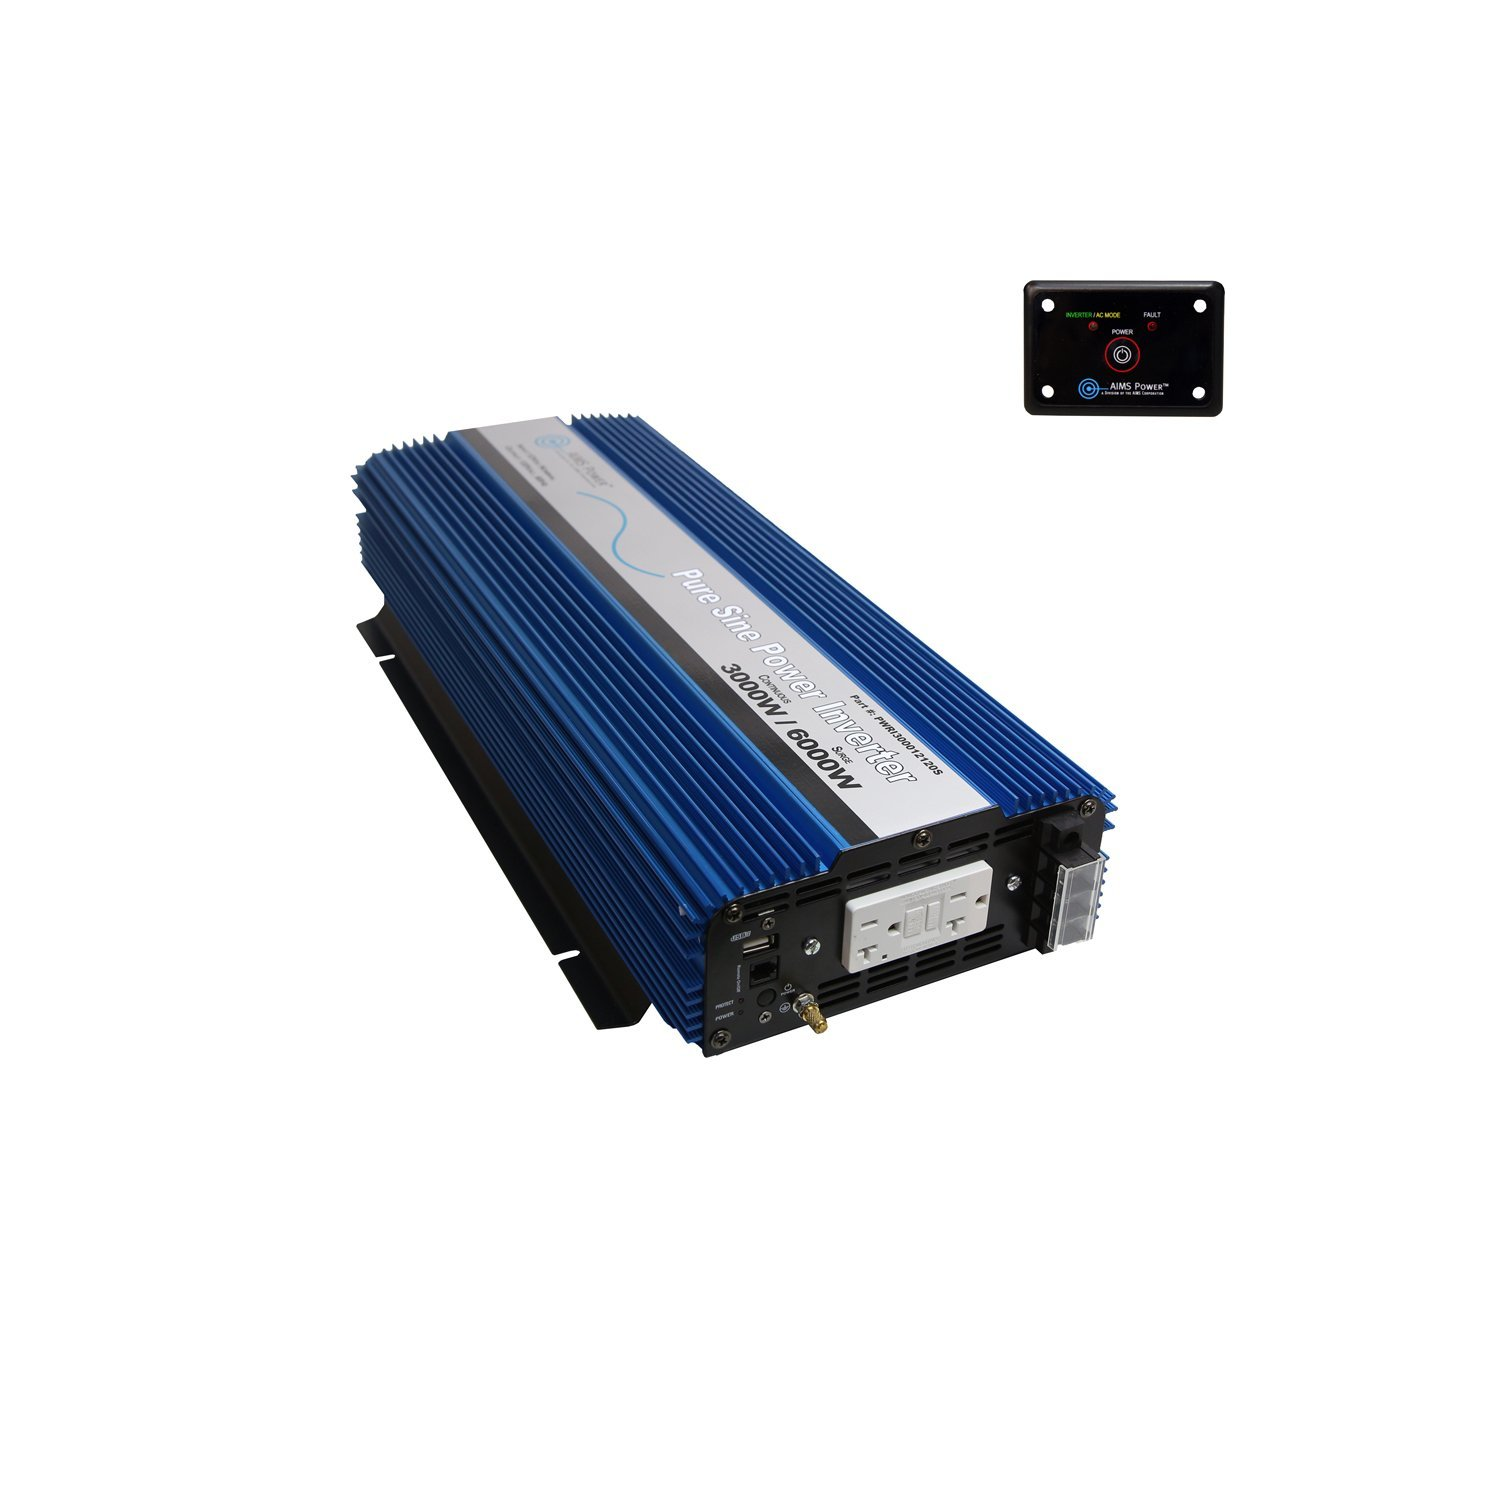 AIMS PWRI300012120S 3000 Watt 12V Pure Sine Wave Power Inverter Bundle with Inverter and Remote Switch (2 Items)